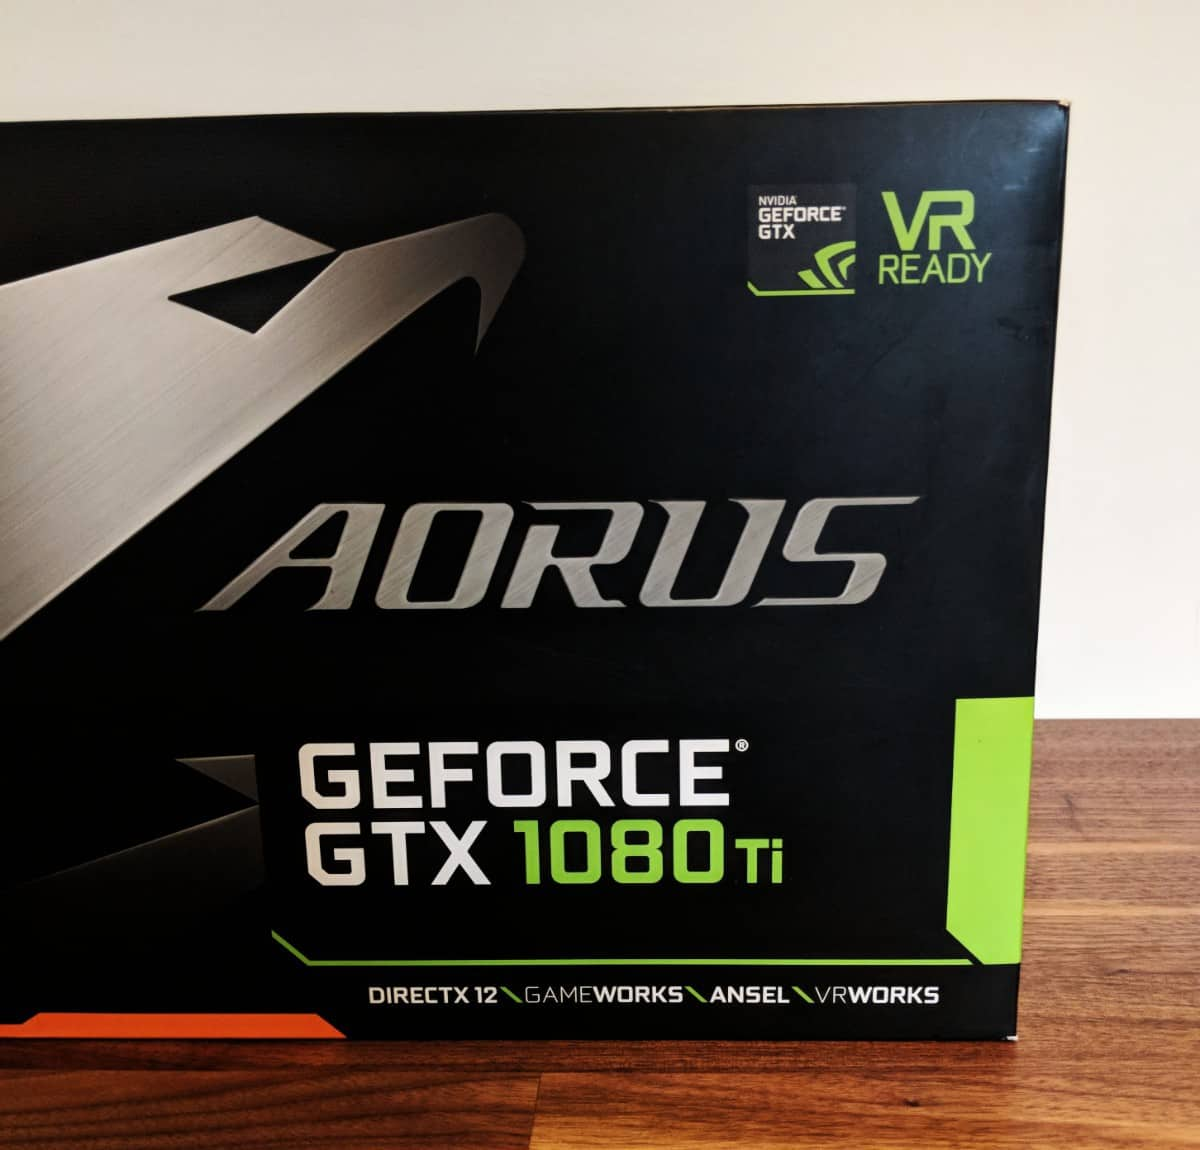 gtx1080ti-Photos-28 Gigabyte AORUS GTX 1080 Ti Review